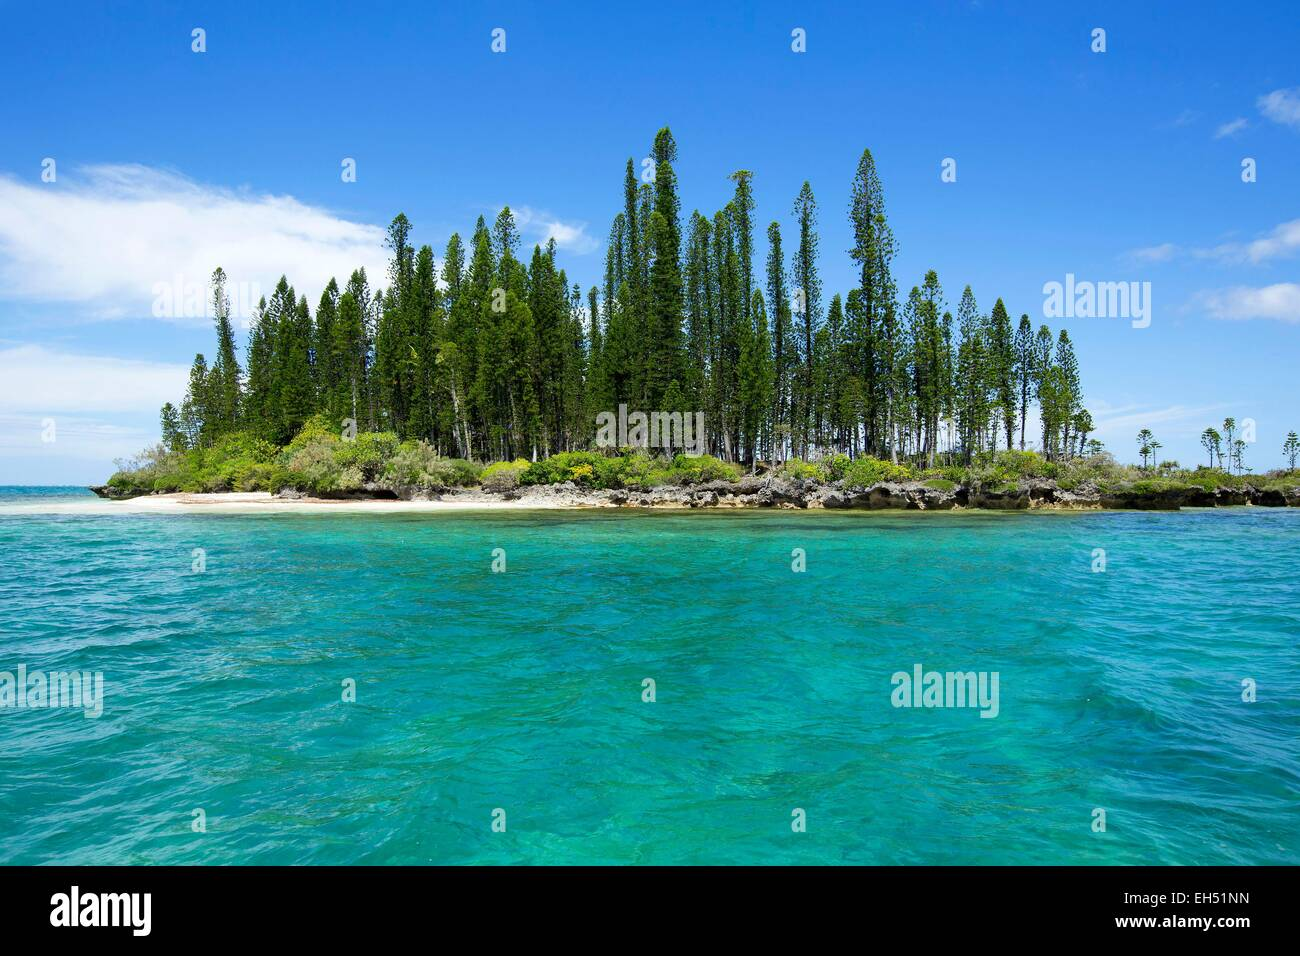 France, New Caledonia, Isle of Pines, Uni Bay Lagoon listed as World Heritage by UNESCO - Stock Image